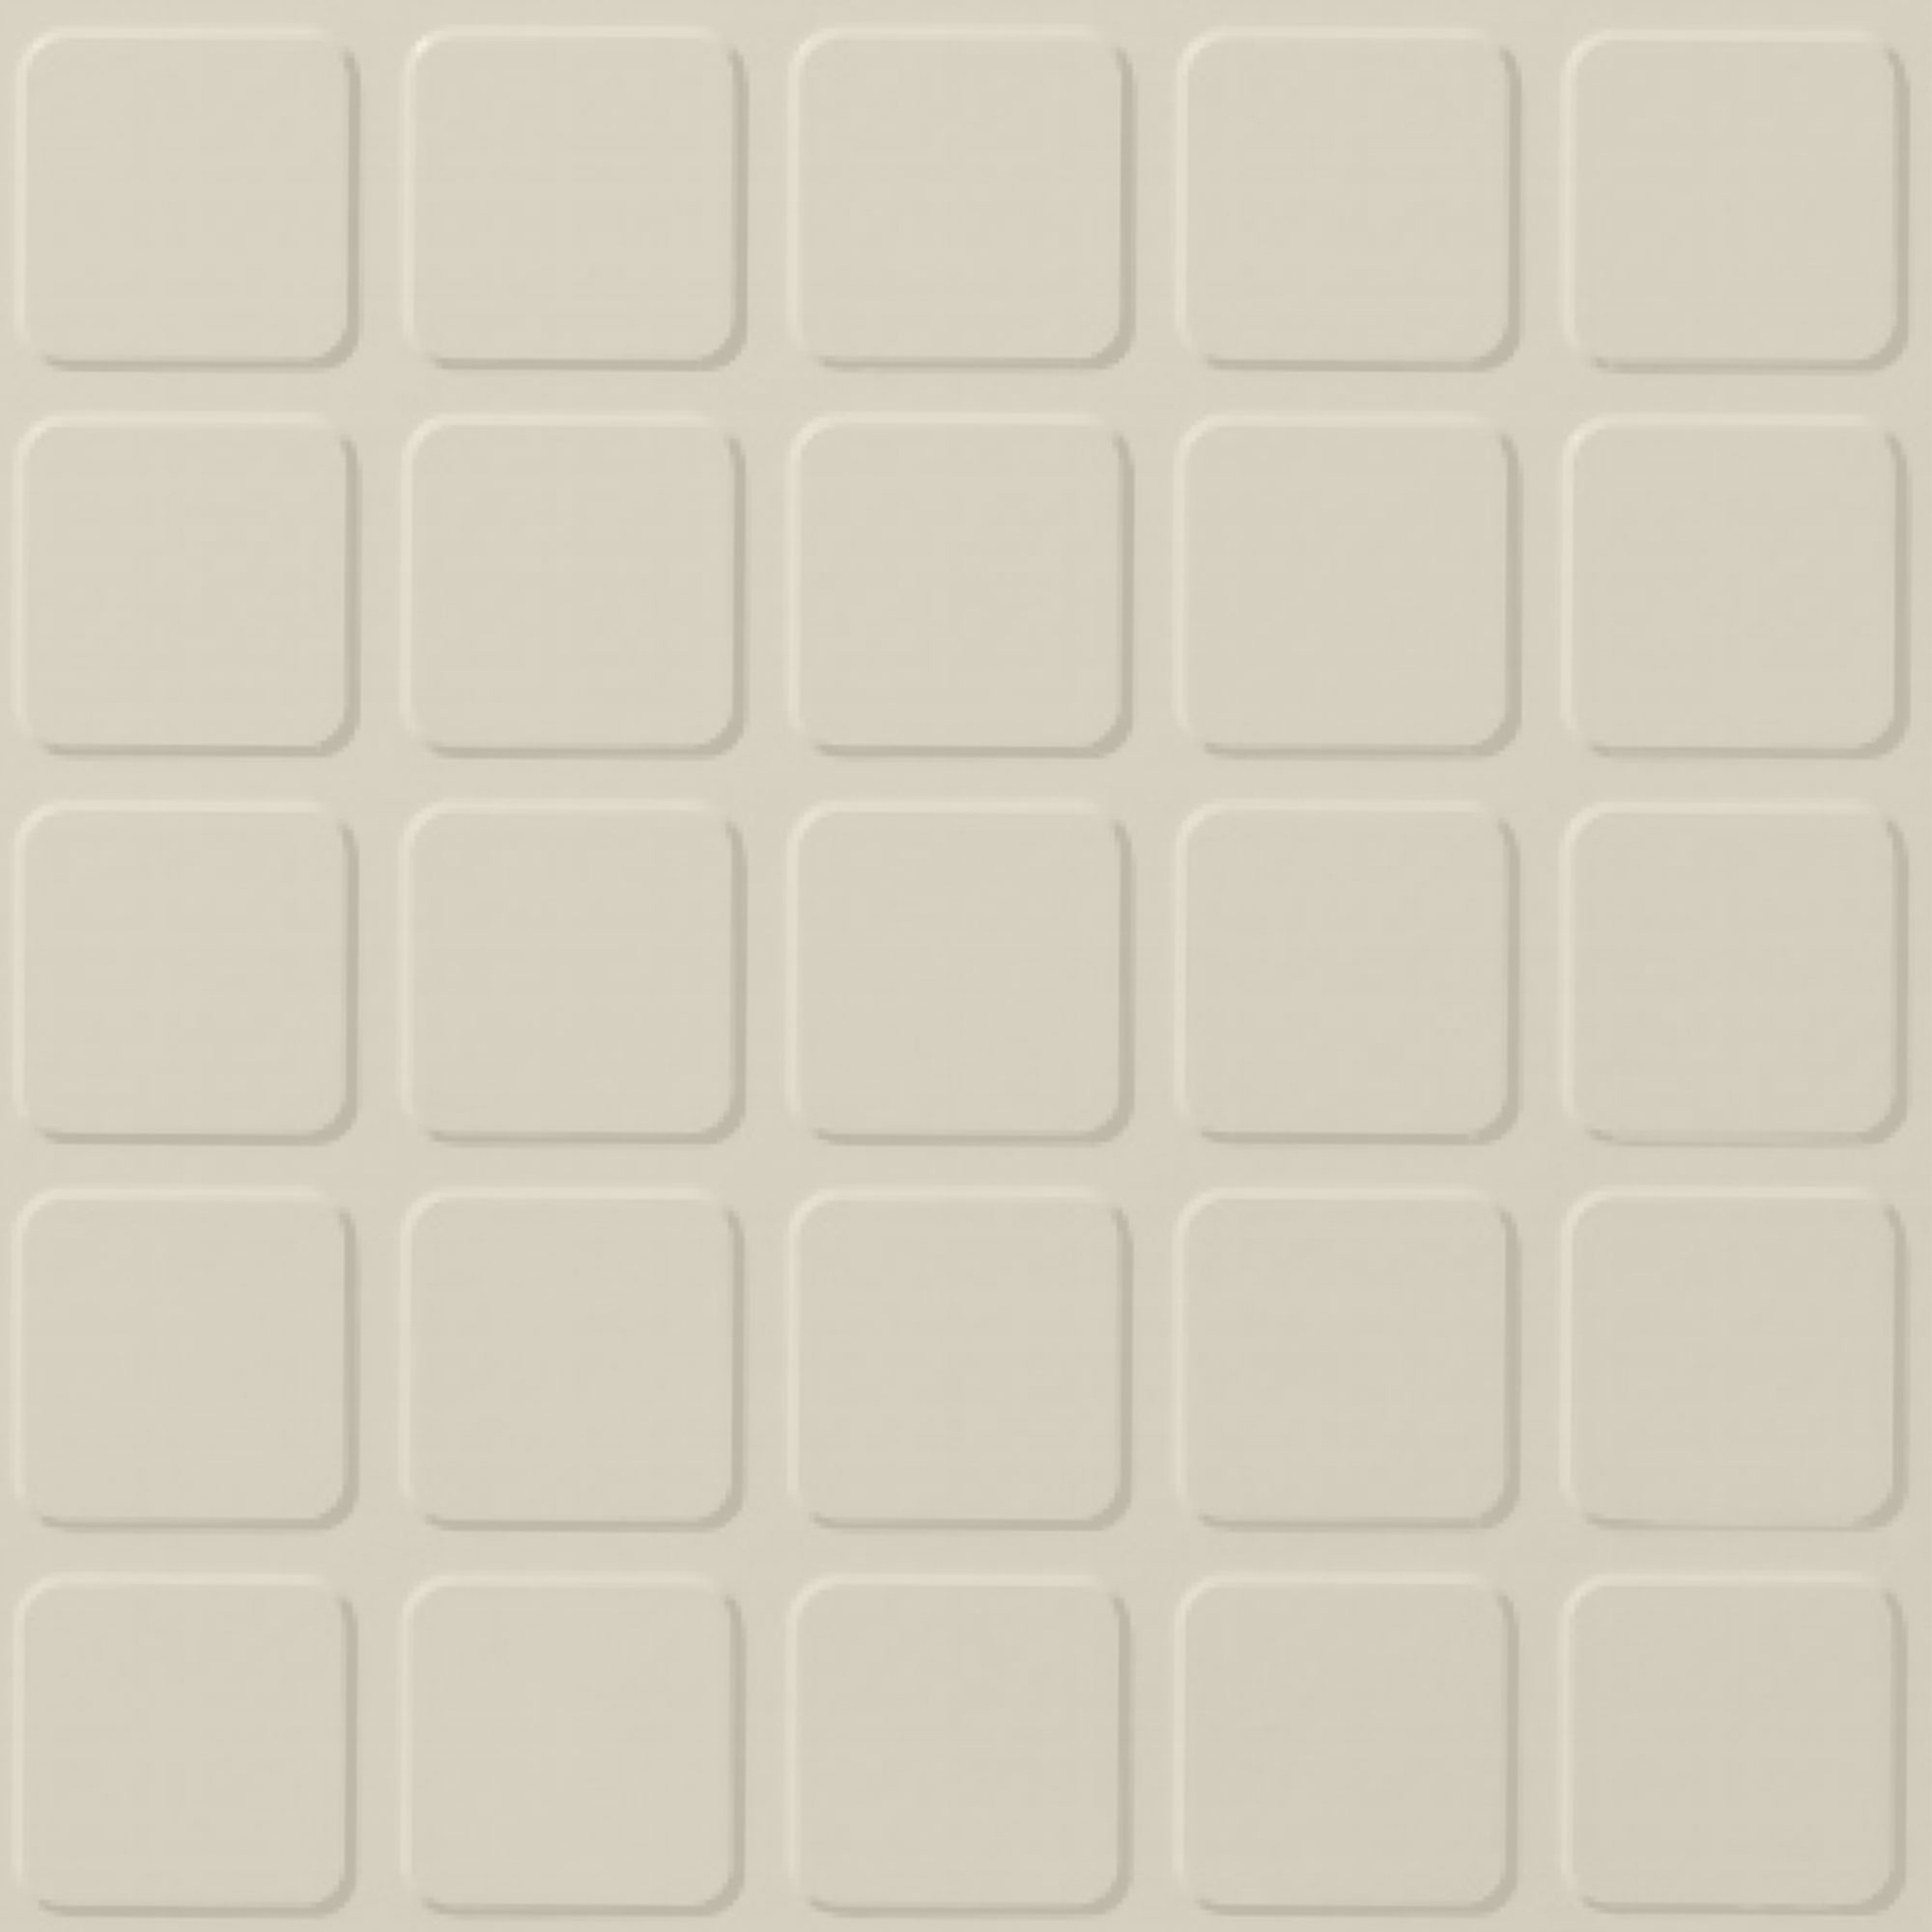 Roppe Rubber Design Treads - Raised Square Design White 170